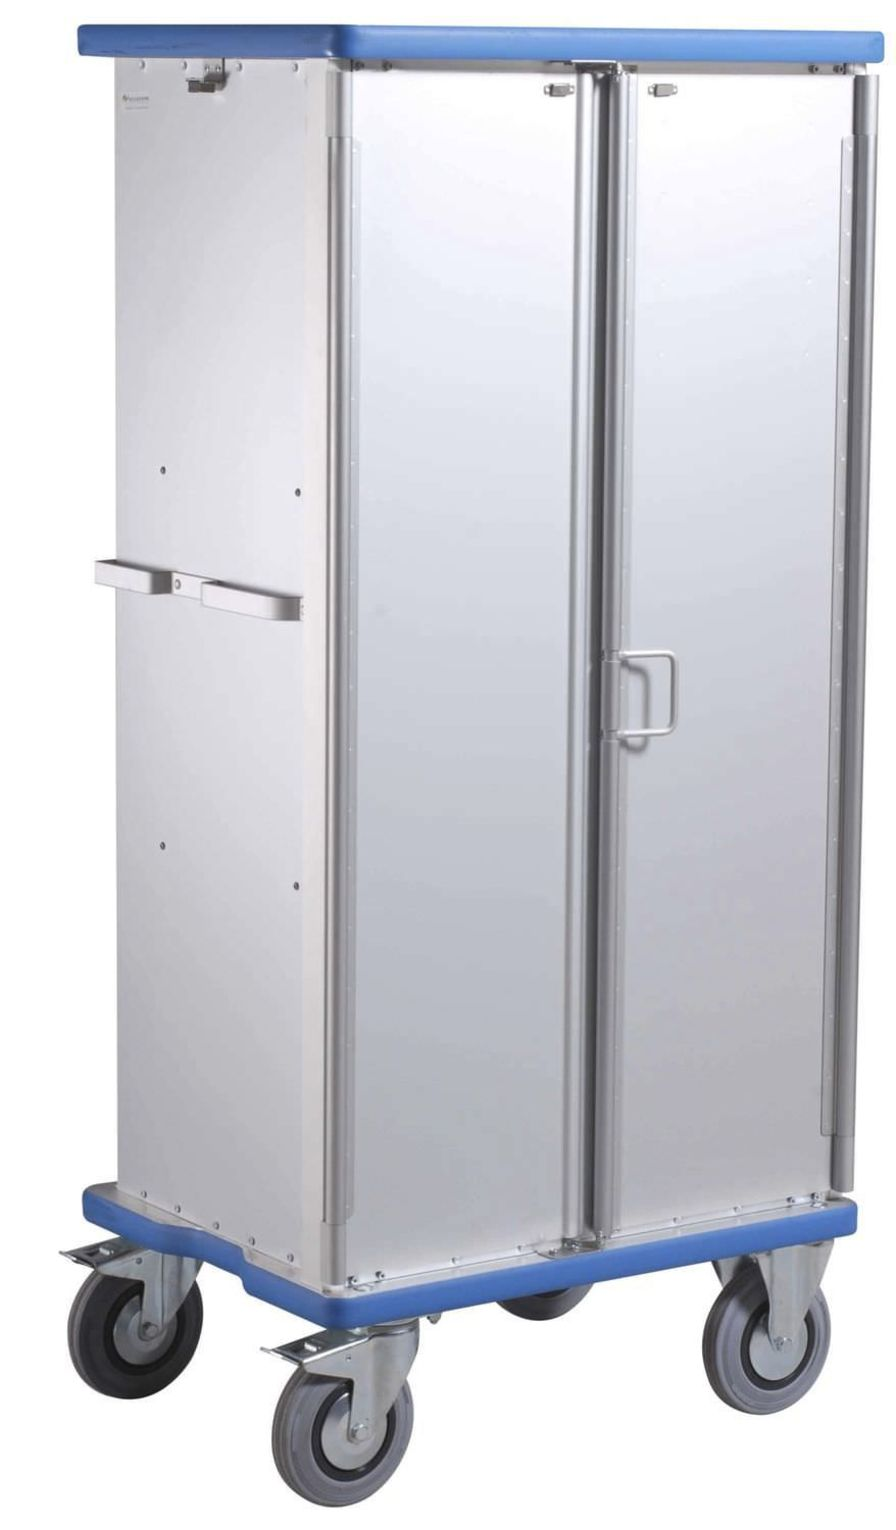 Medical cabinet / clean linen / for healthcare facilities / 2-door E2725 Sclessin Productions